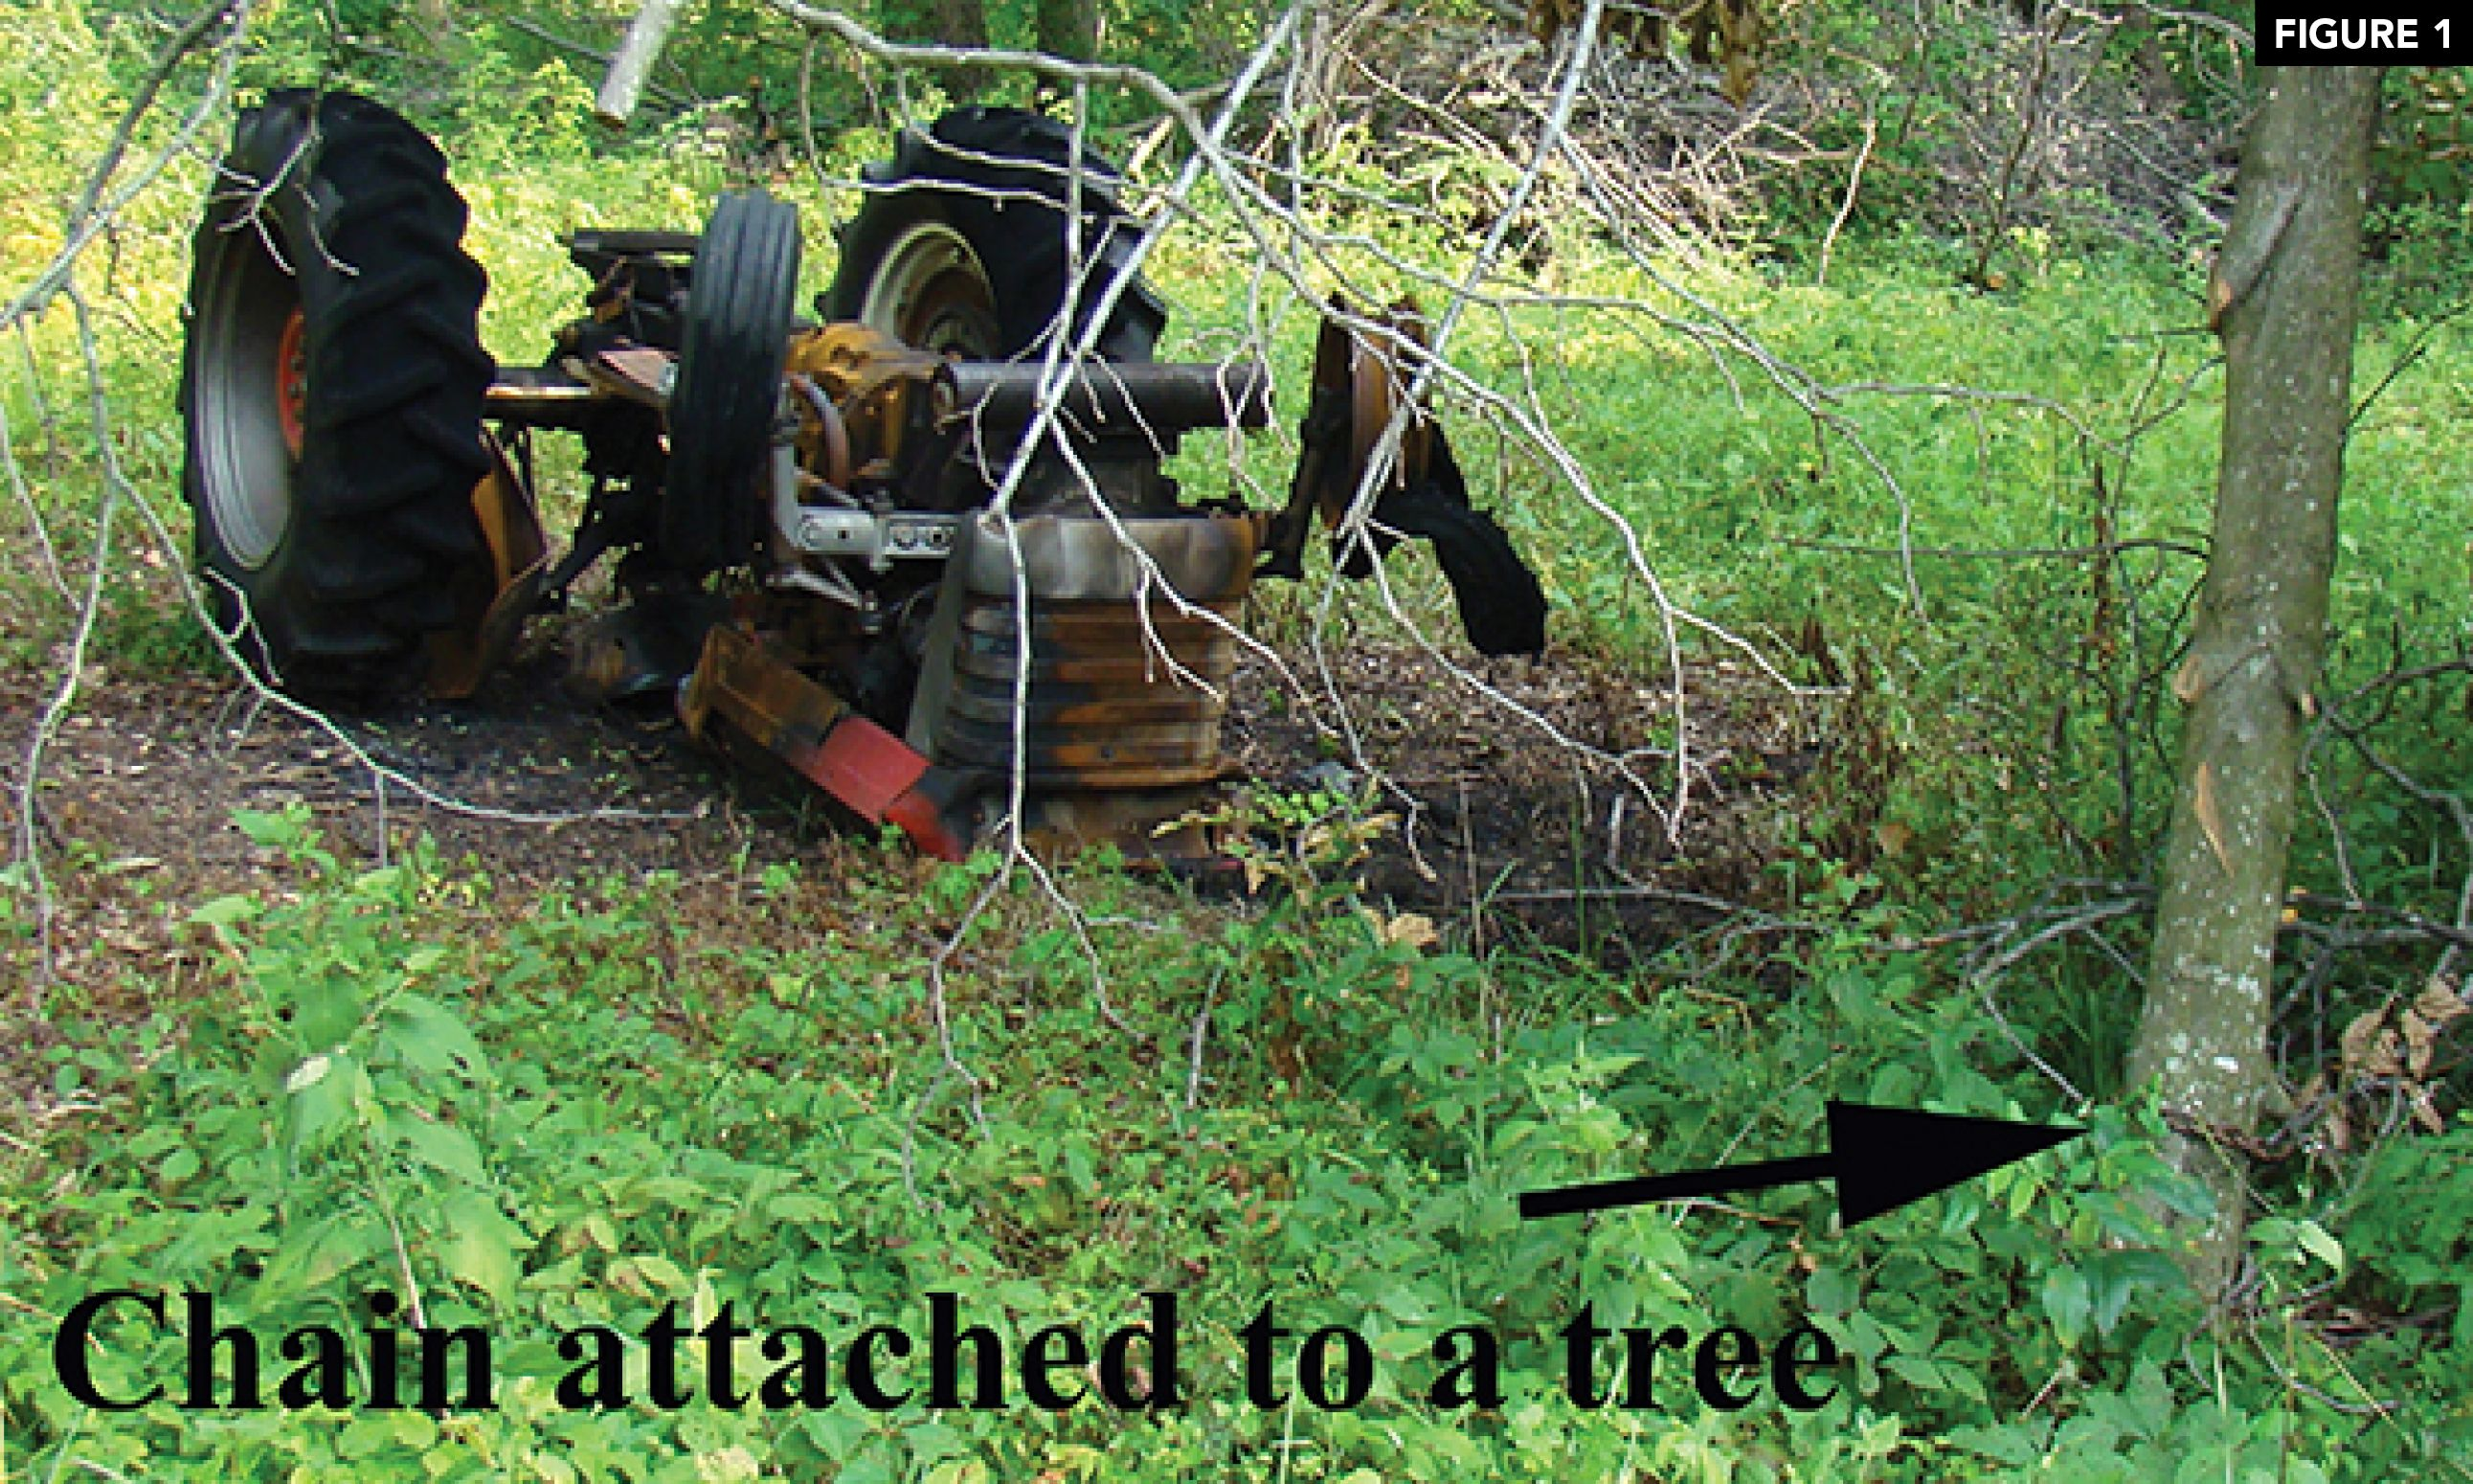 Chain from tractor to tree.